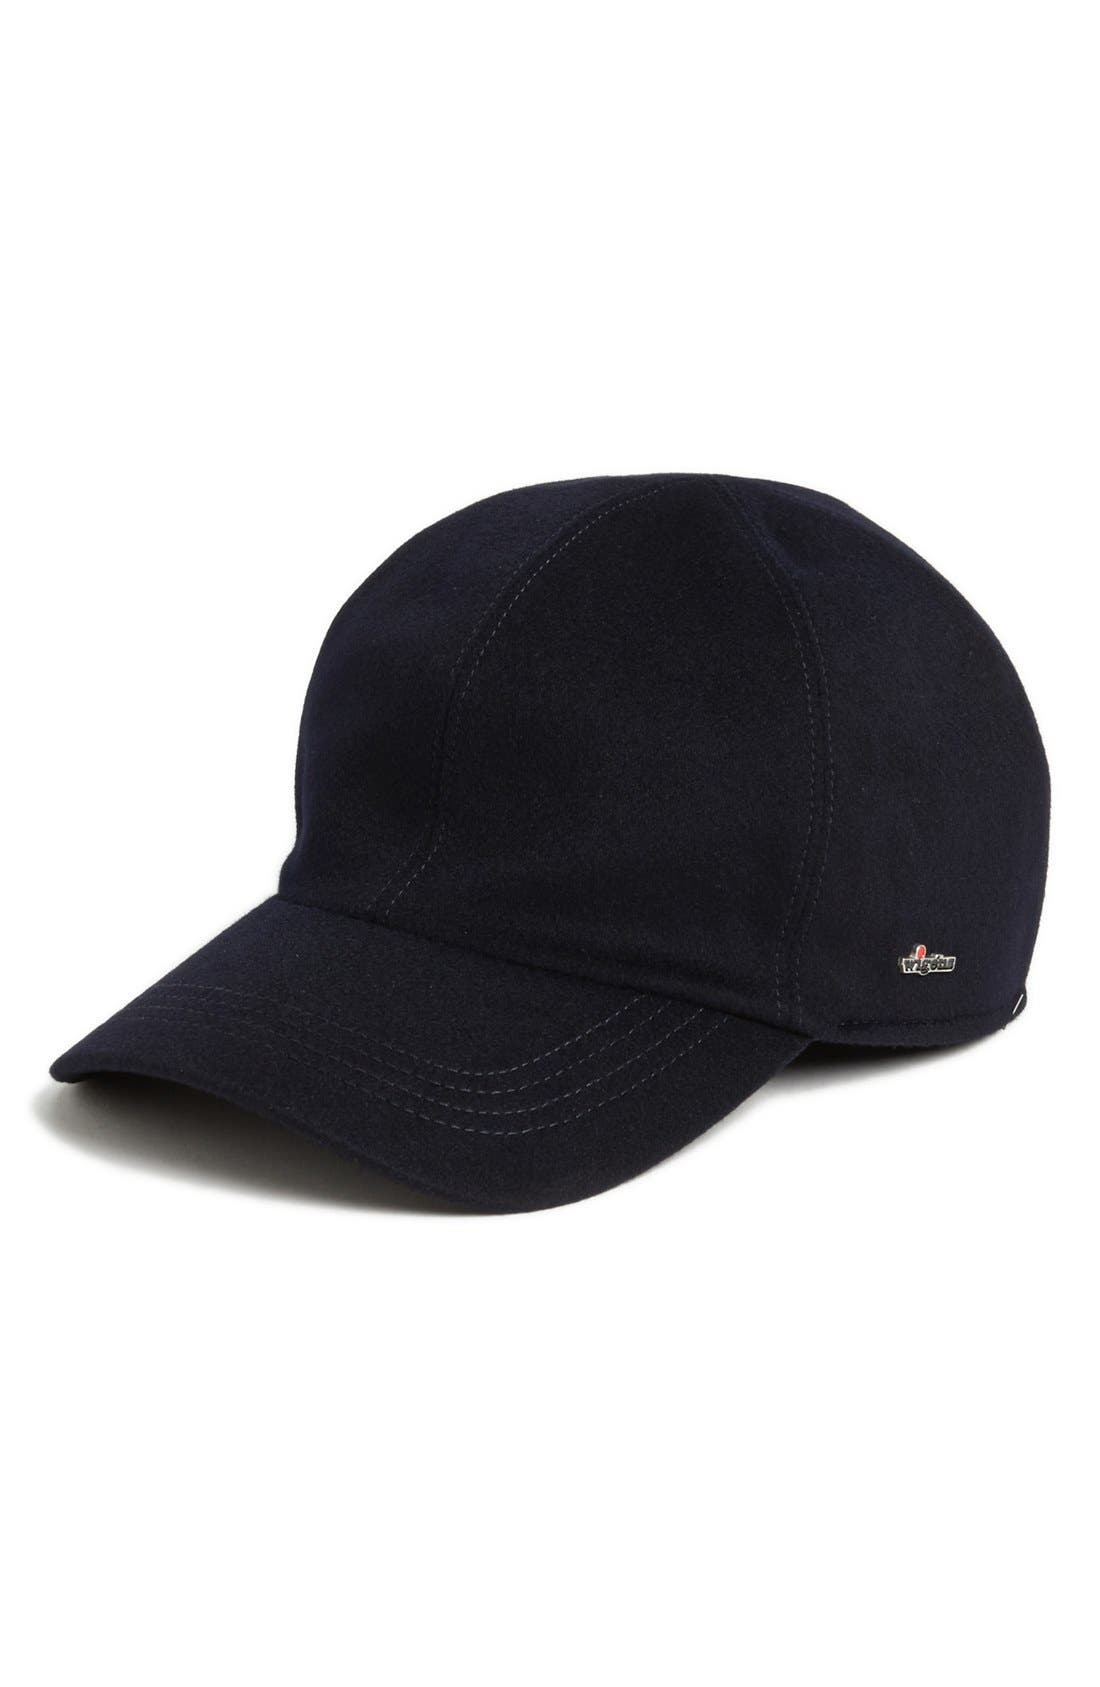 'Loro Piana Storm System' Earflap Baseball Cap,                             Main thumbnail 1, color,                             Navy